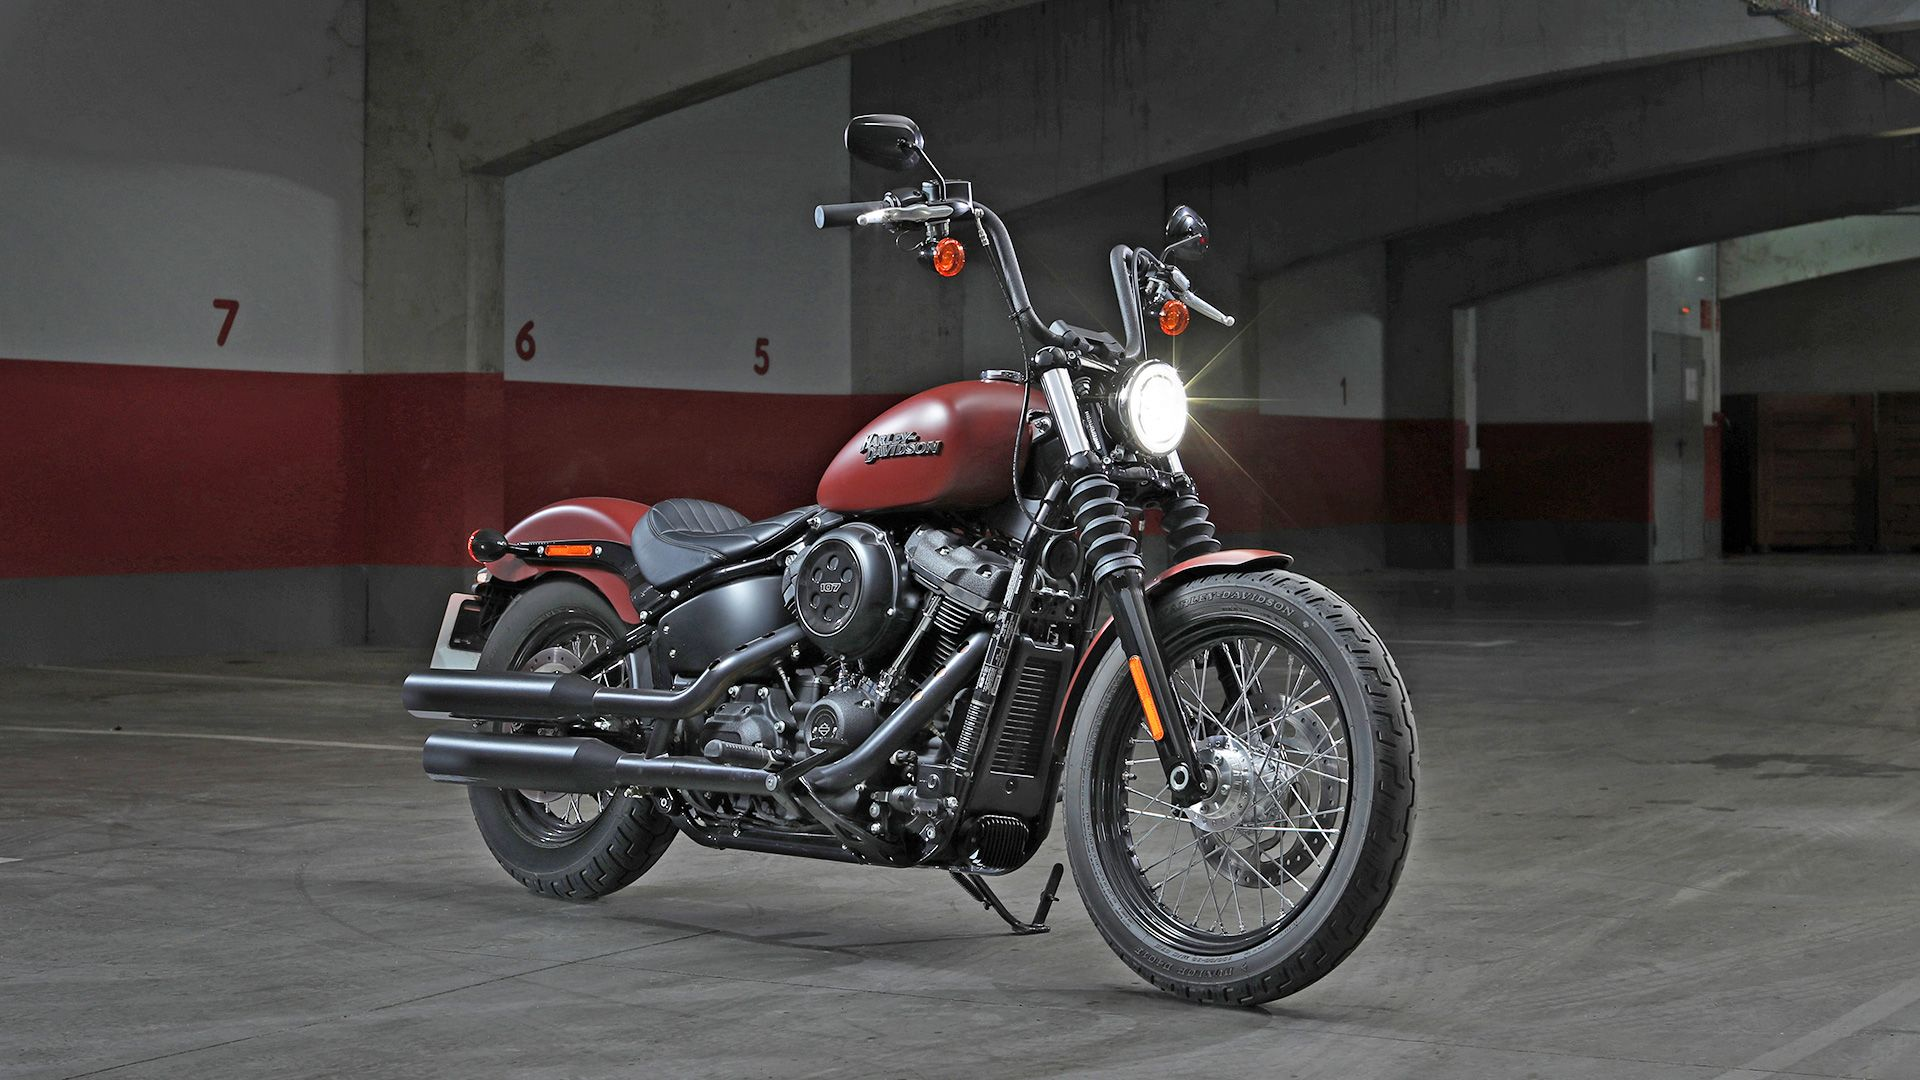 Harley Davidson Street Bob Wallpapers